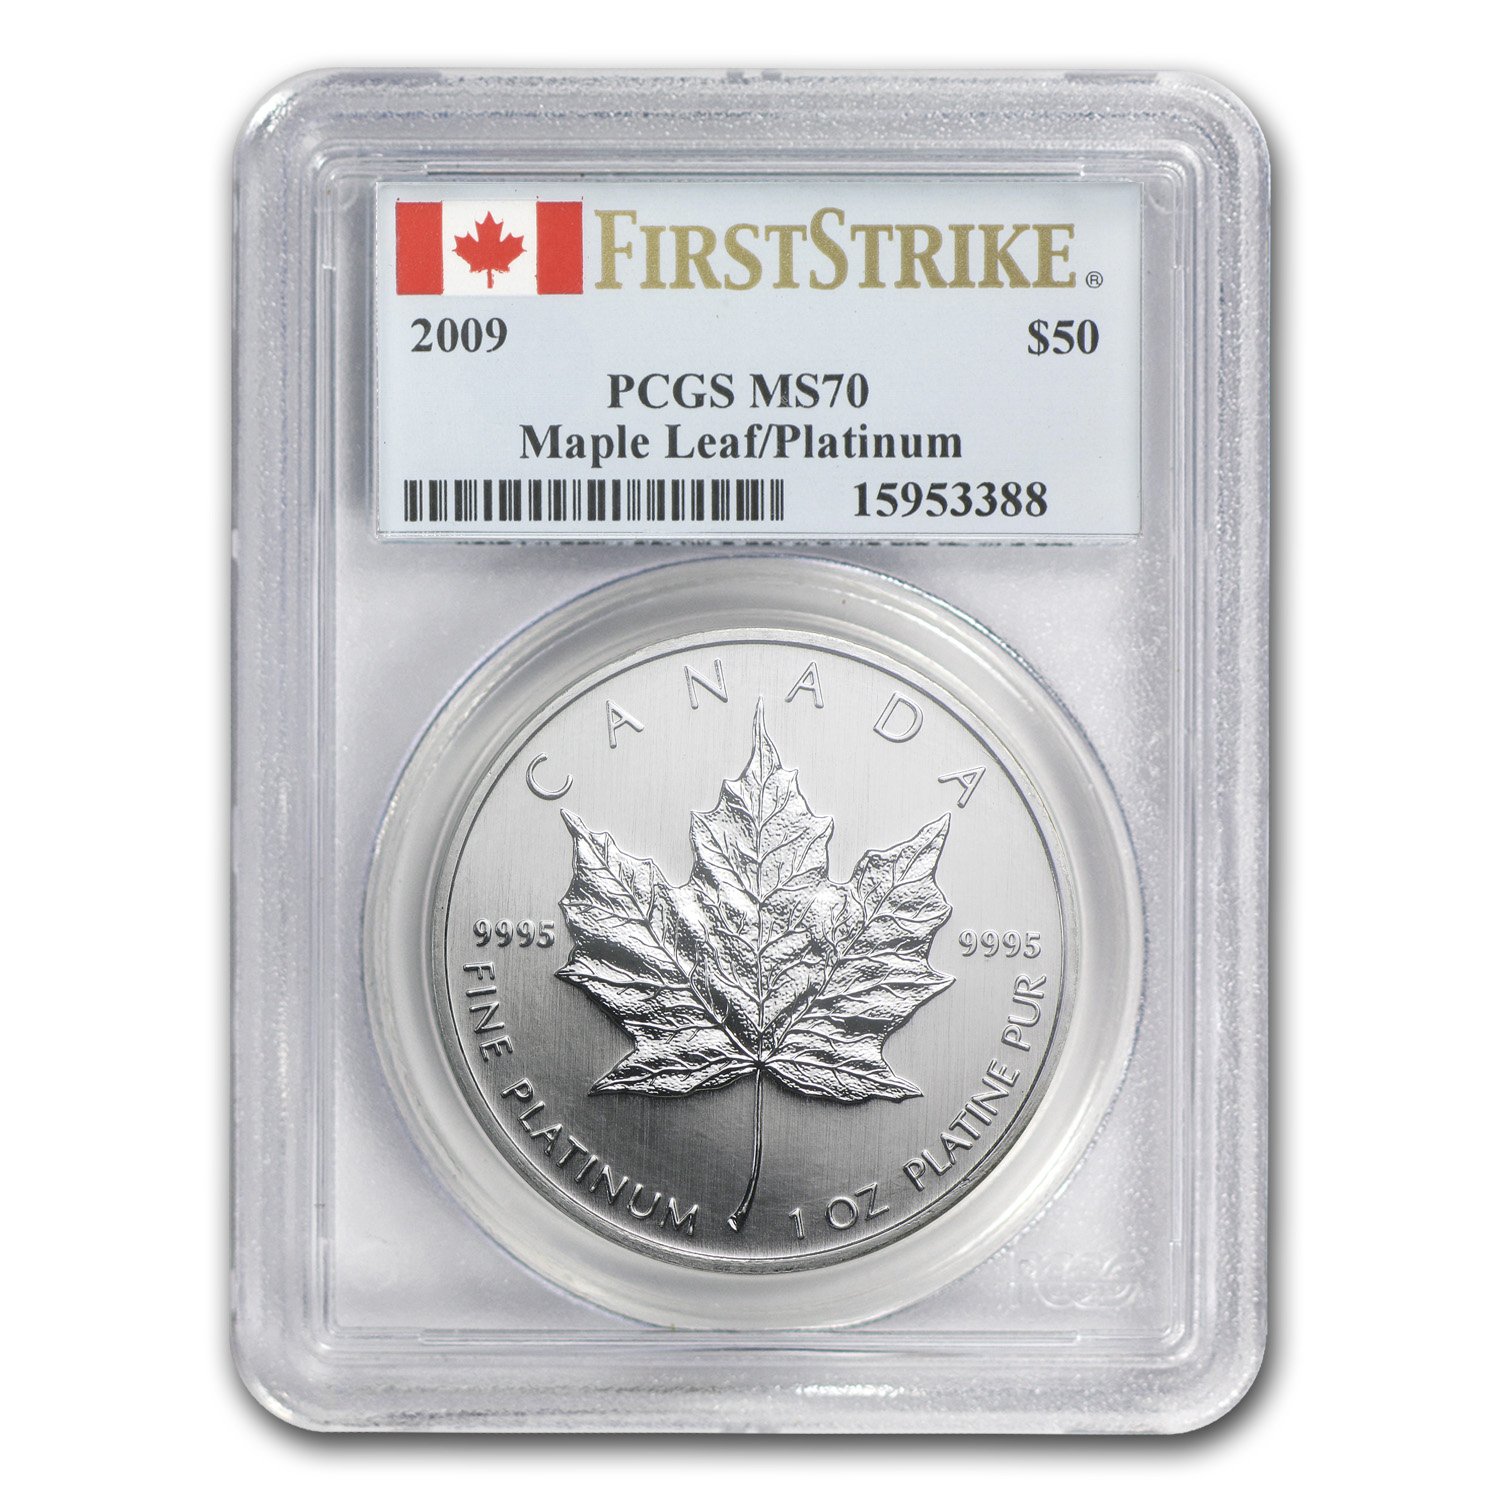 2009 1 oz Canadian Platinum Maple Leaf MS-70 PCGS (First Strike)